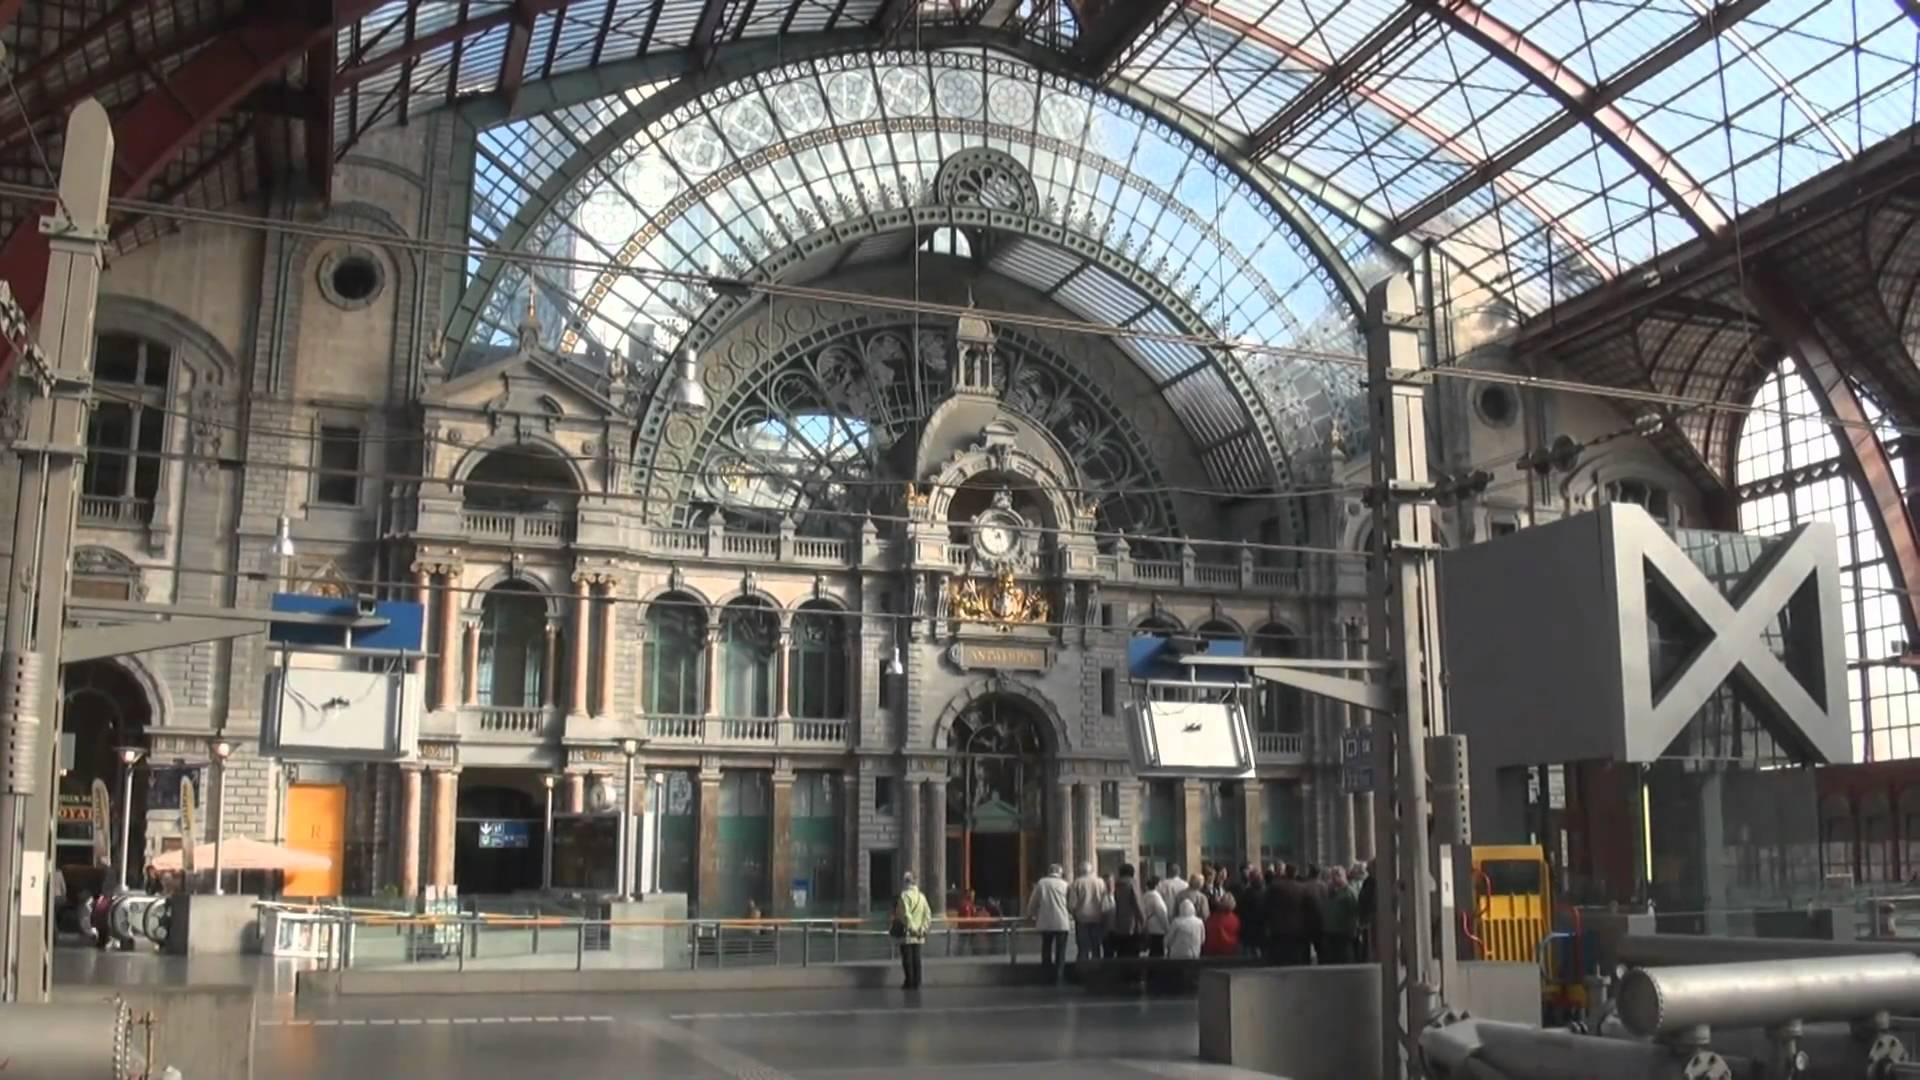 Centraal Station Antwerp, Antwerpen Central Station • Belgium - YouTube